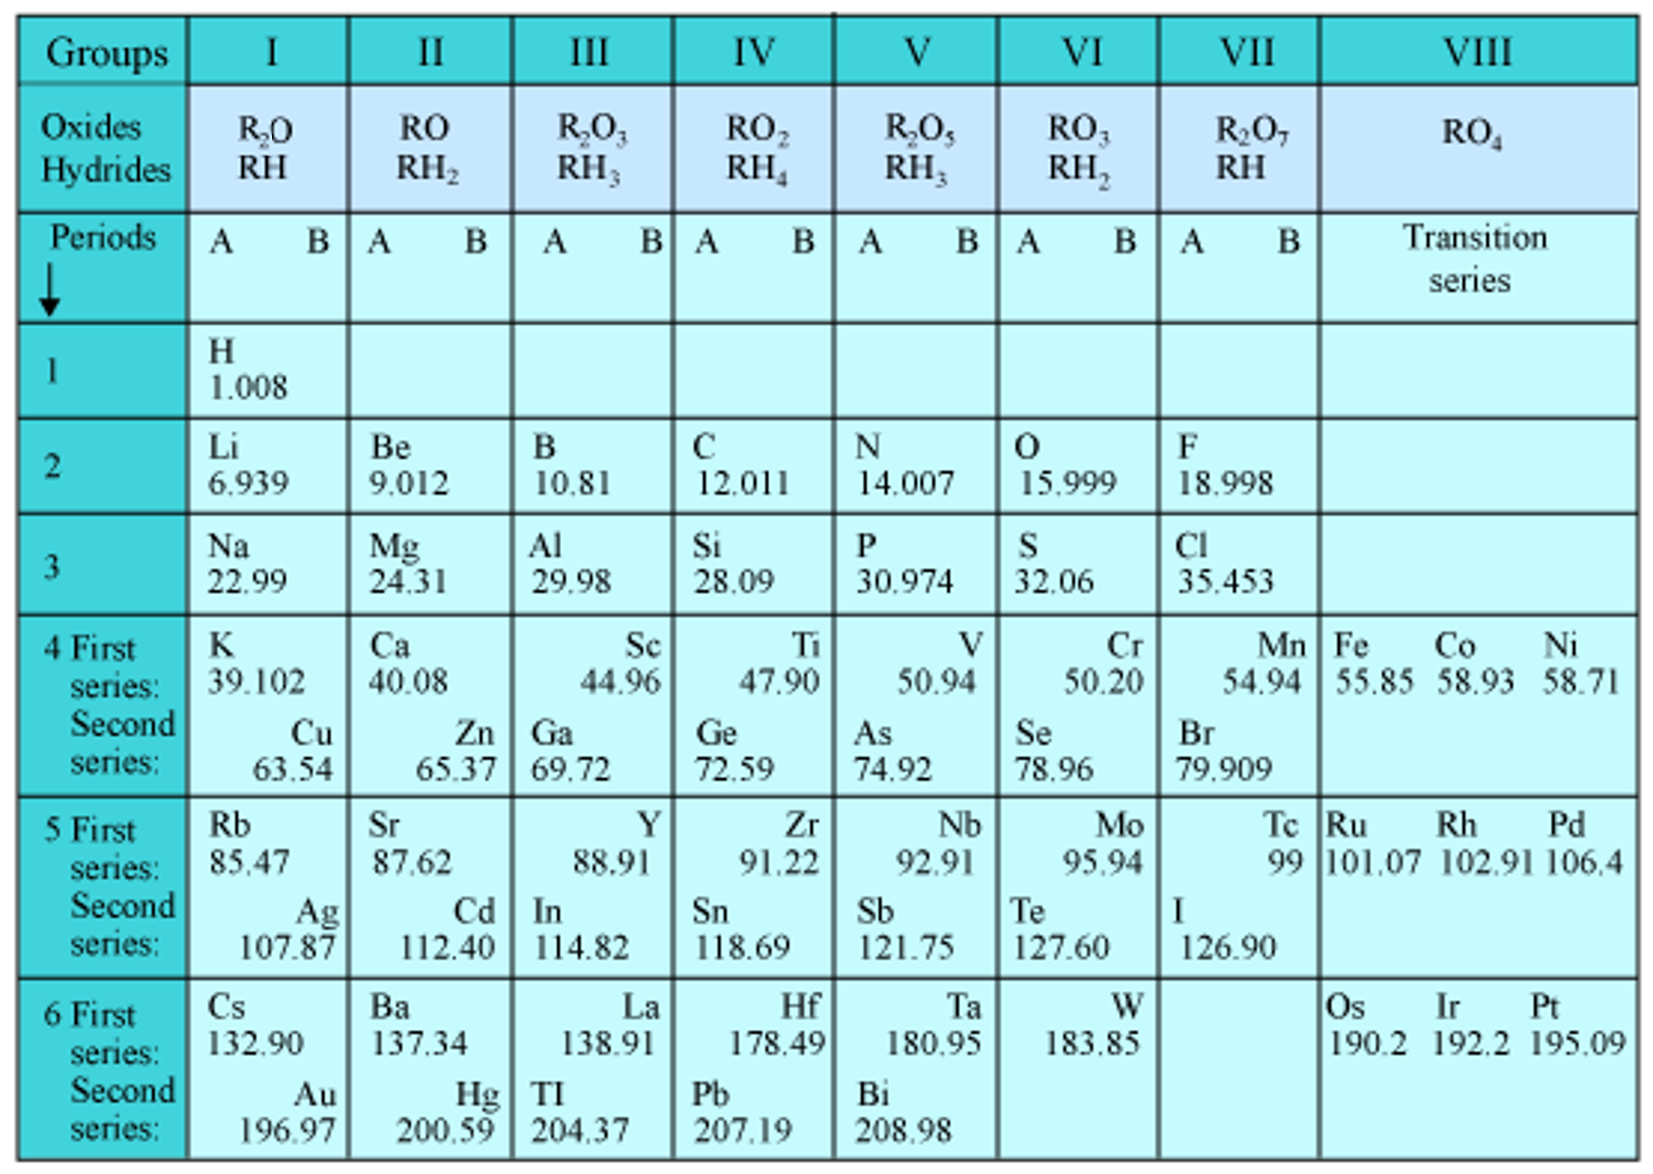 Periodic classification of elements class 10 revision important ques periodic classification of elements mendeleevs periodic table was urtaz